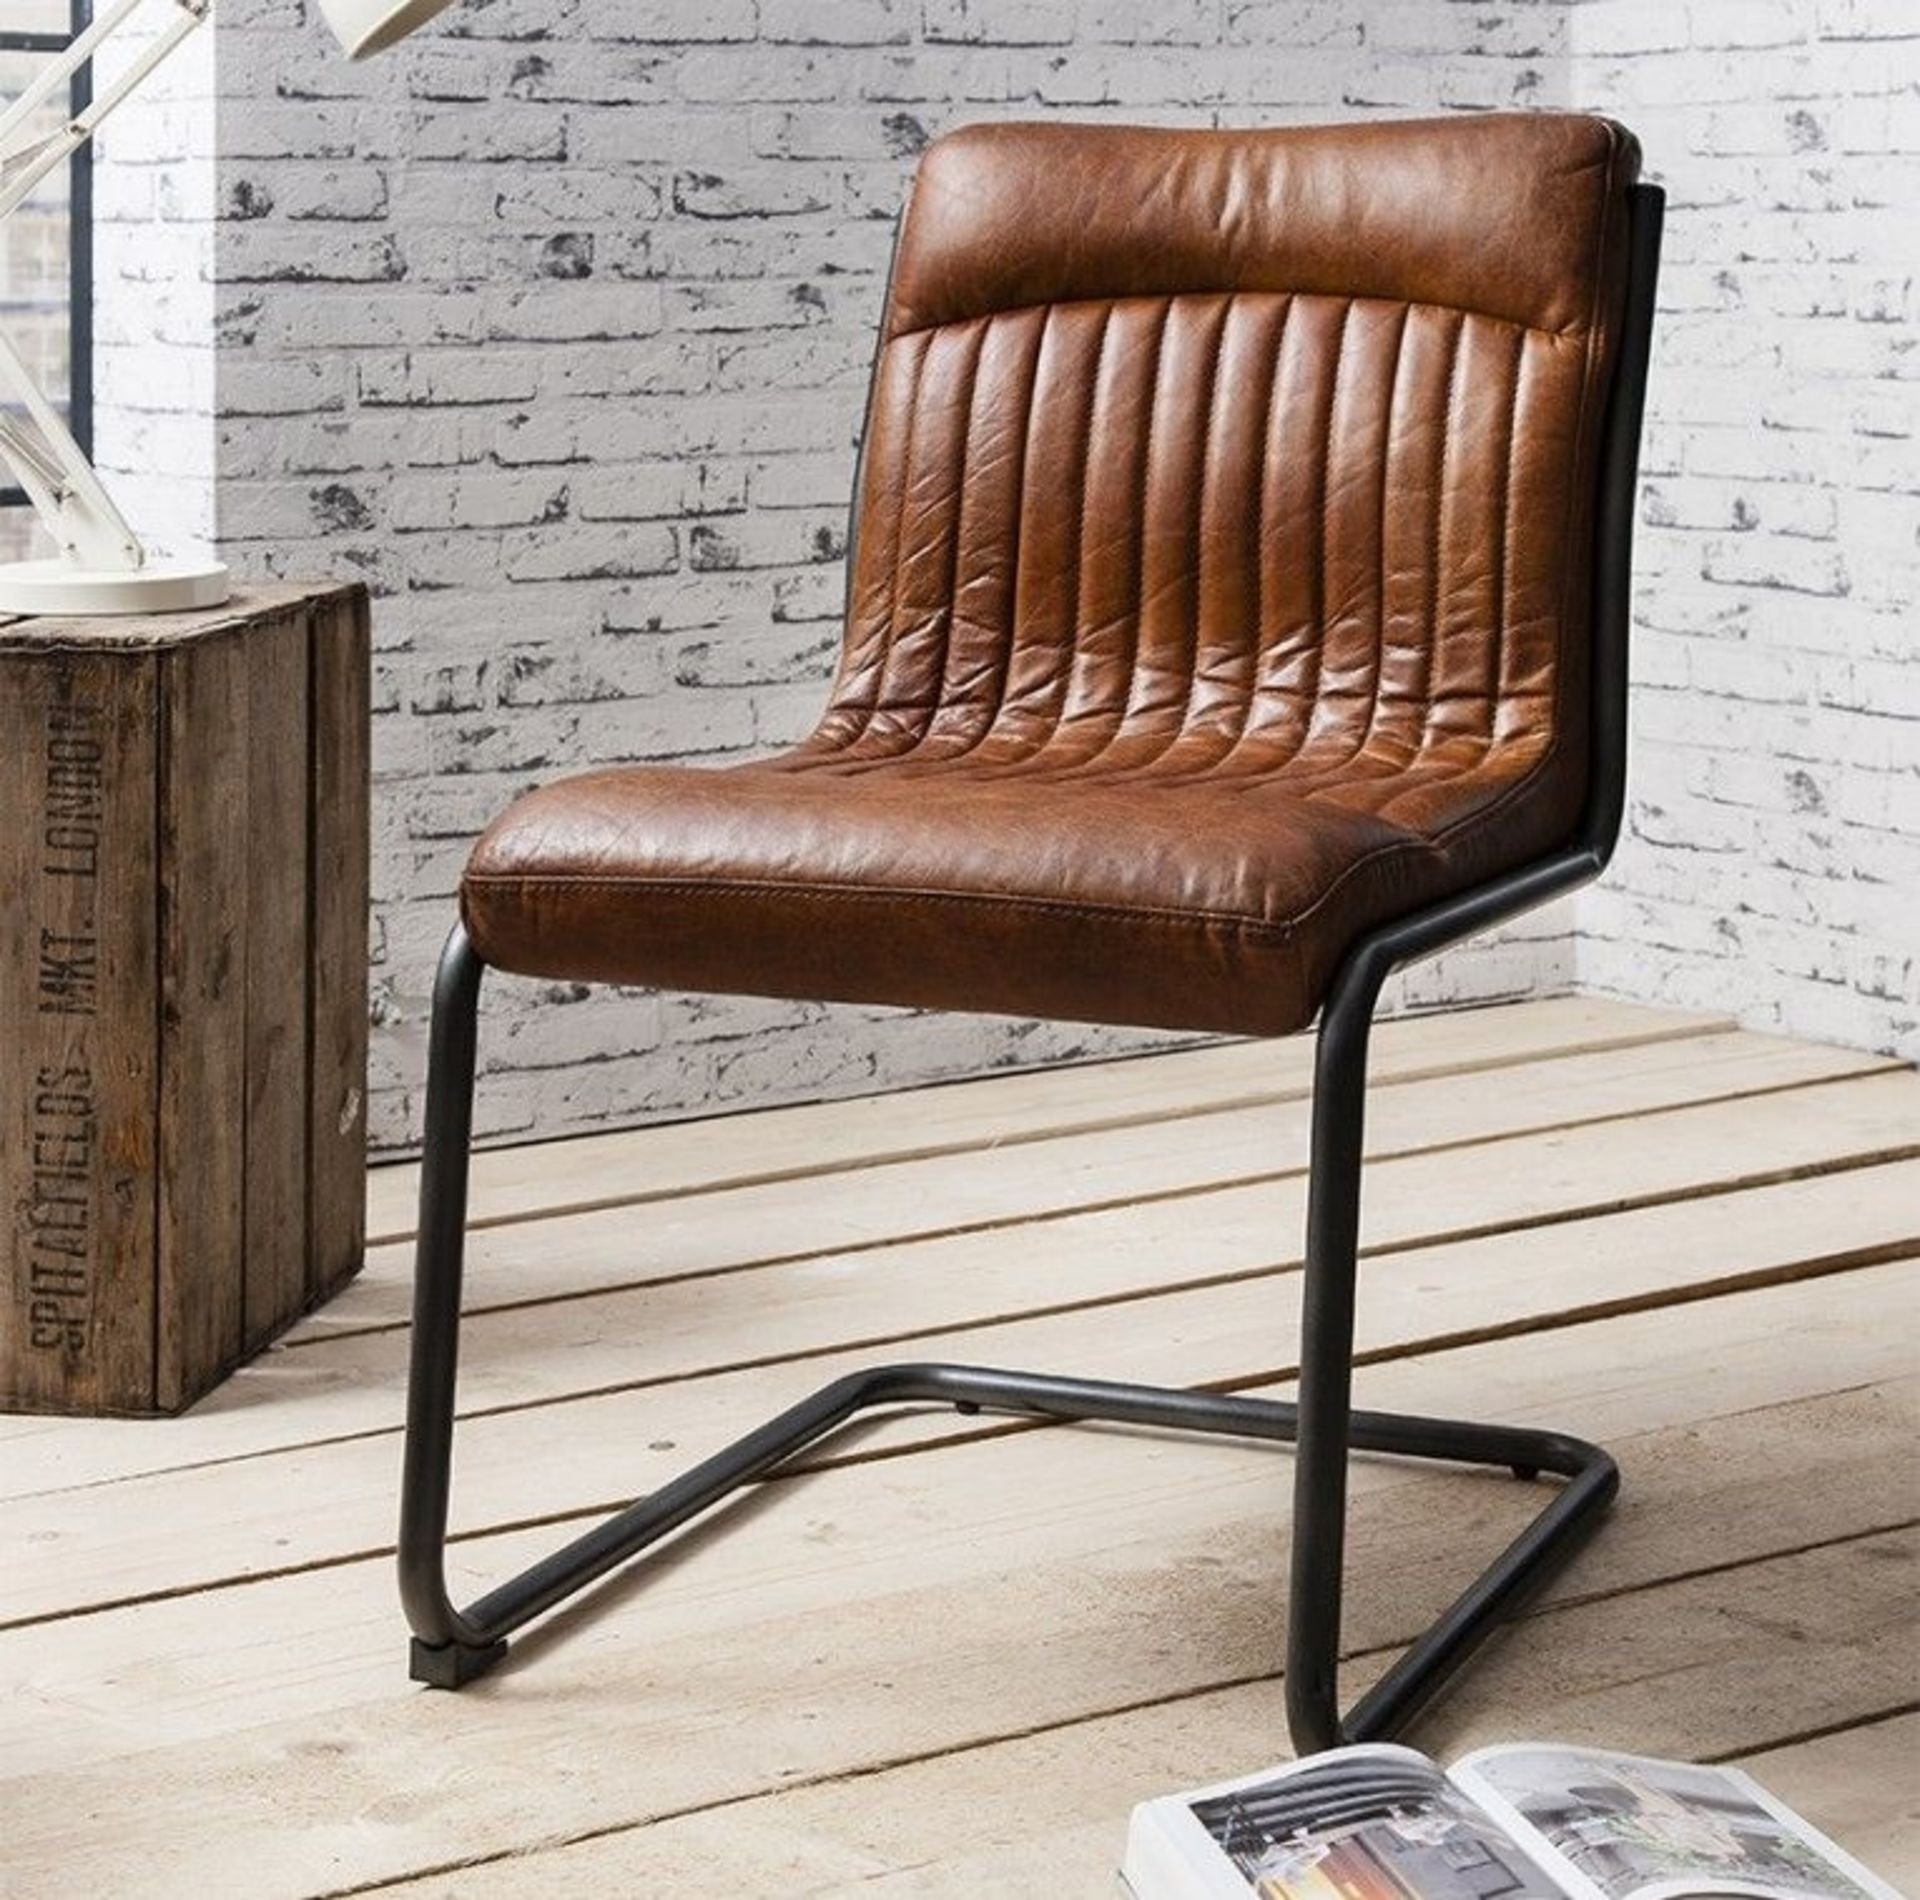 Capri Leather Chair Contemporary dining or office chair with metal frame and top grain leather